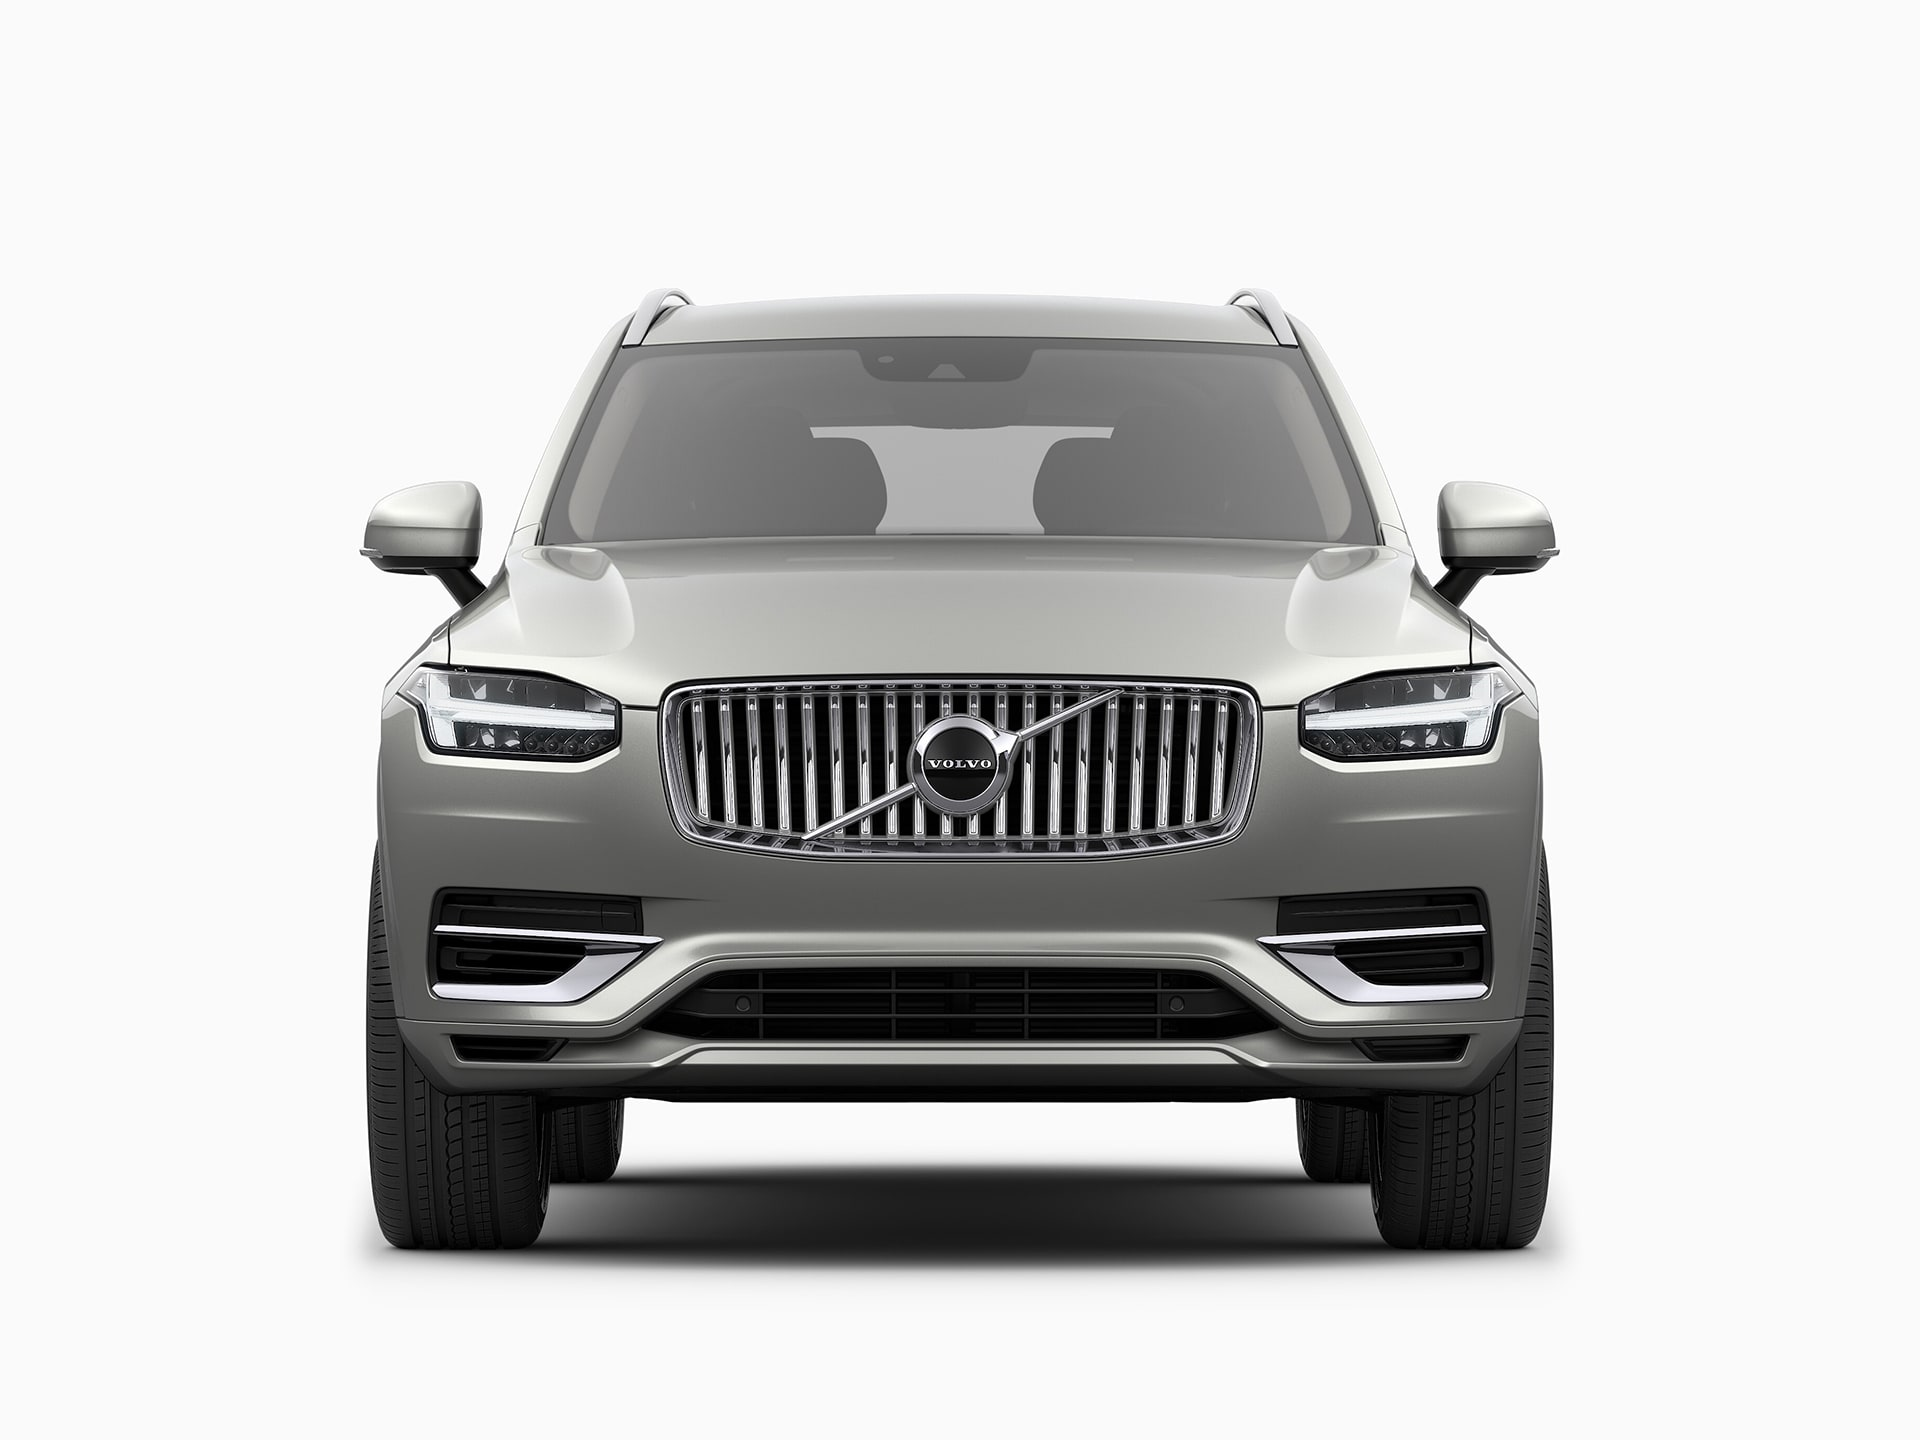 The front of a Volvo XC90 Recharge plug-in hybrid SUV.